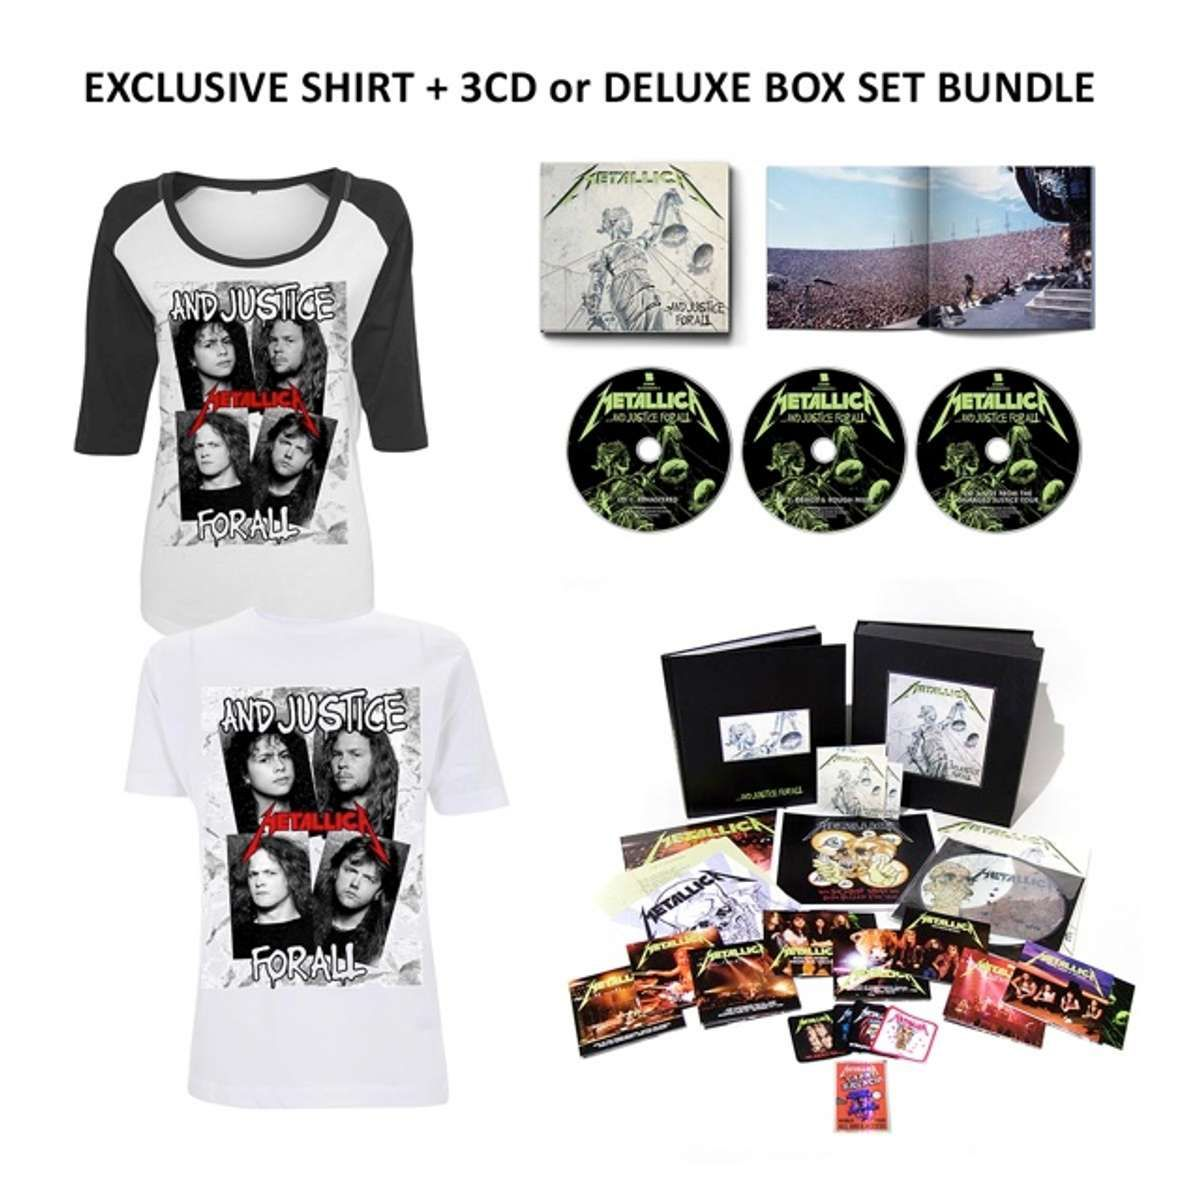 6a5fd238 …And Justice For All (Re-Mastered) Boxset or 3CD + T-shirt Bundle -  Metallica